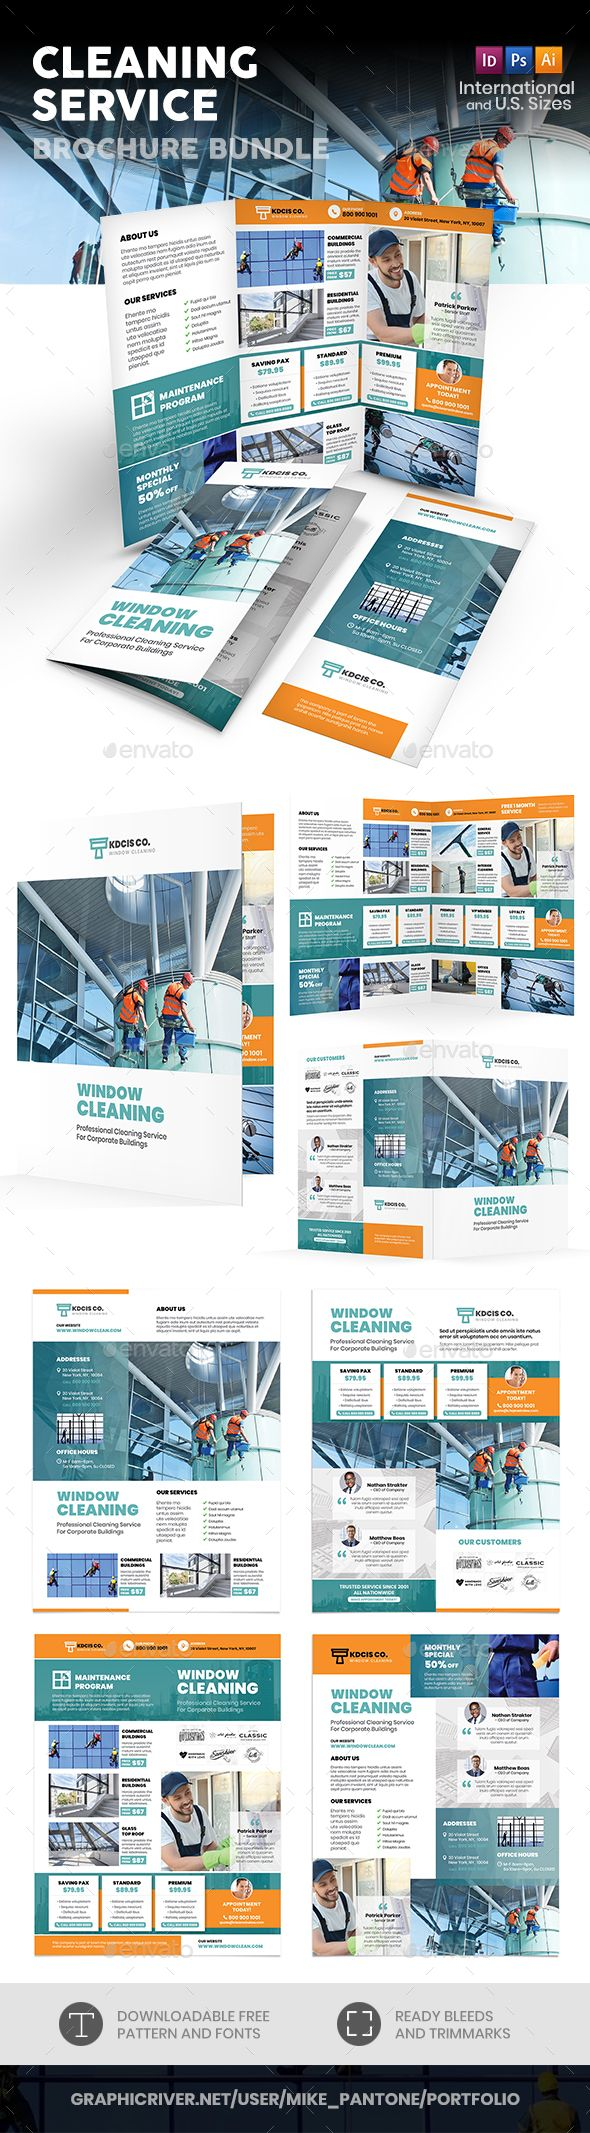 Cleaning Service Print Bundle Fully Editable Professional Template